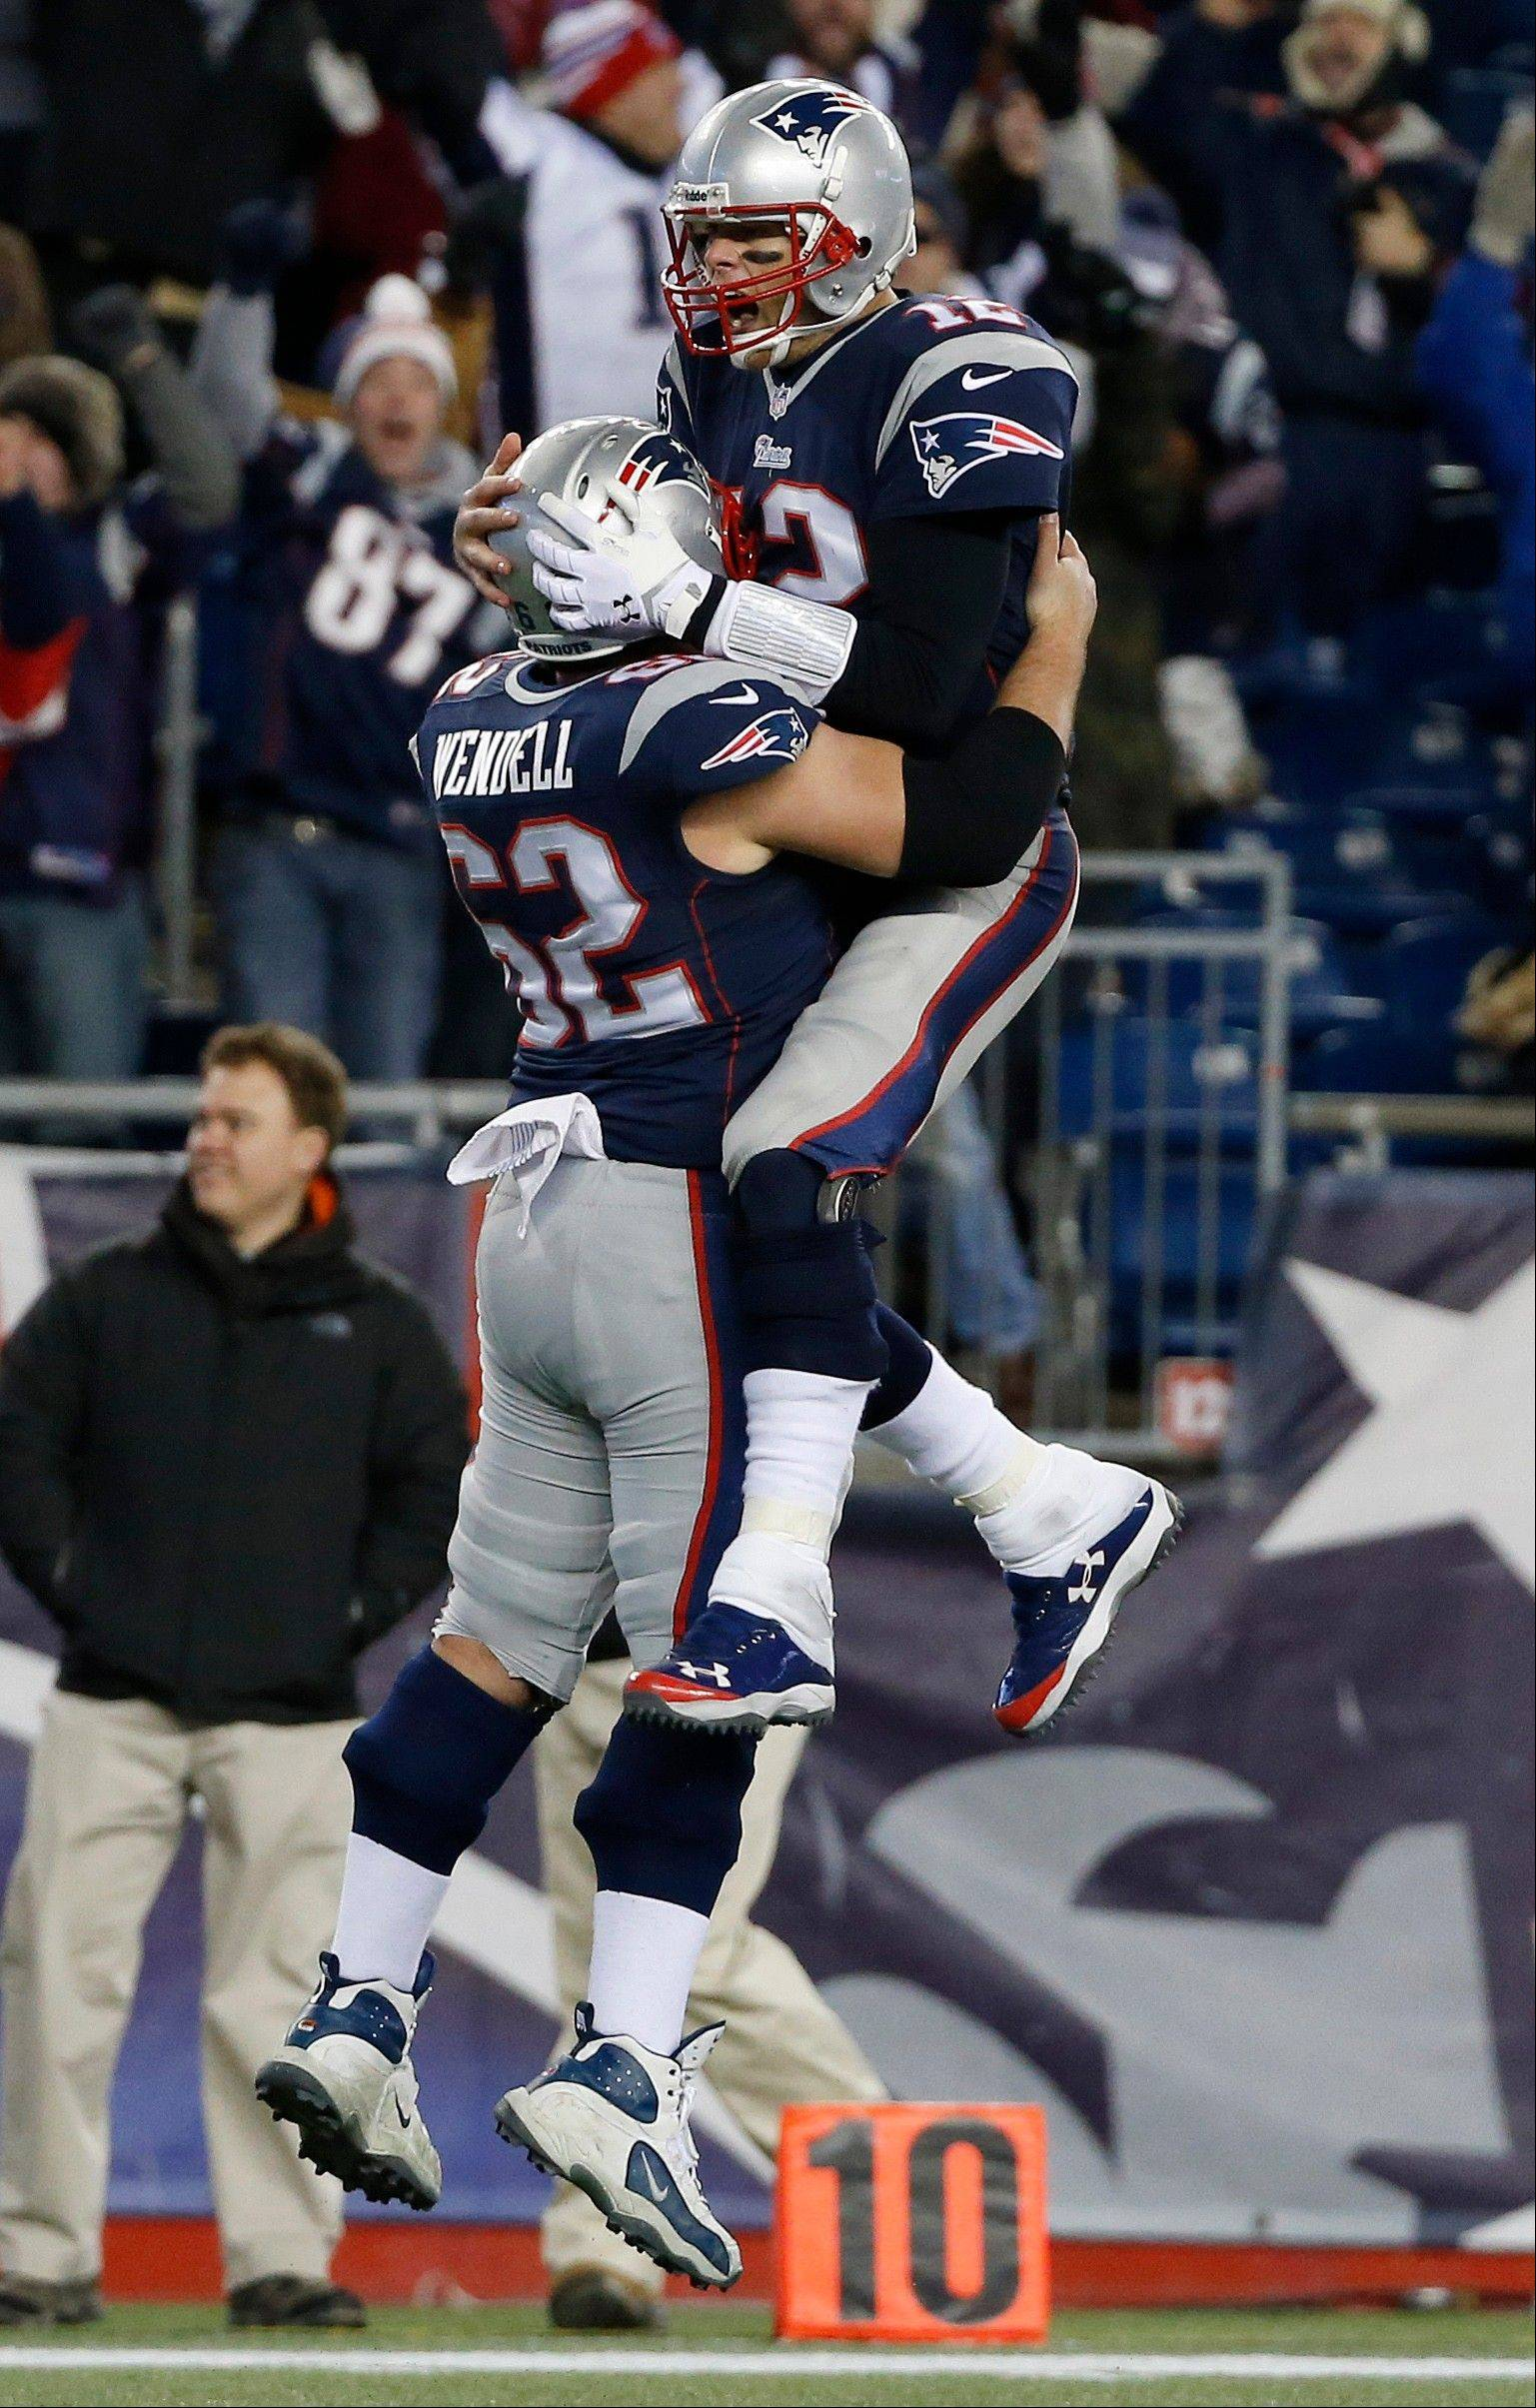 New England Patriots quarterback Tom Brady, right, celebrates his go-ahead touchdown pass with center Ryan Wendell (62) in the fourth quarter of an NFL football game against the Cleveland Browns Sunday, Dec. 8, 2013, in Foxborough, Mass. The Patriots came from behind to win 27-26.